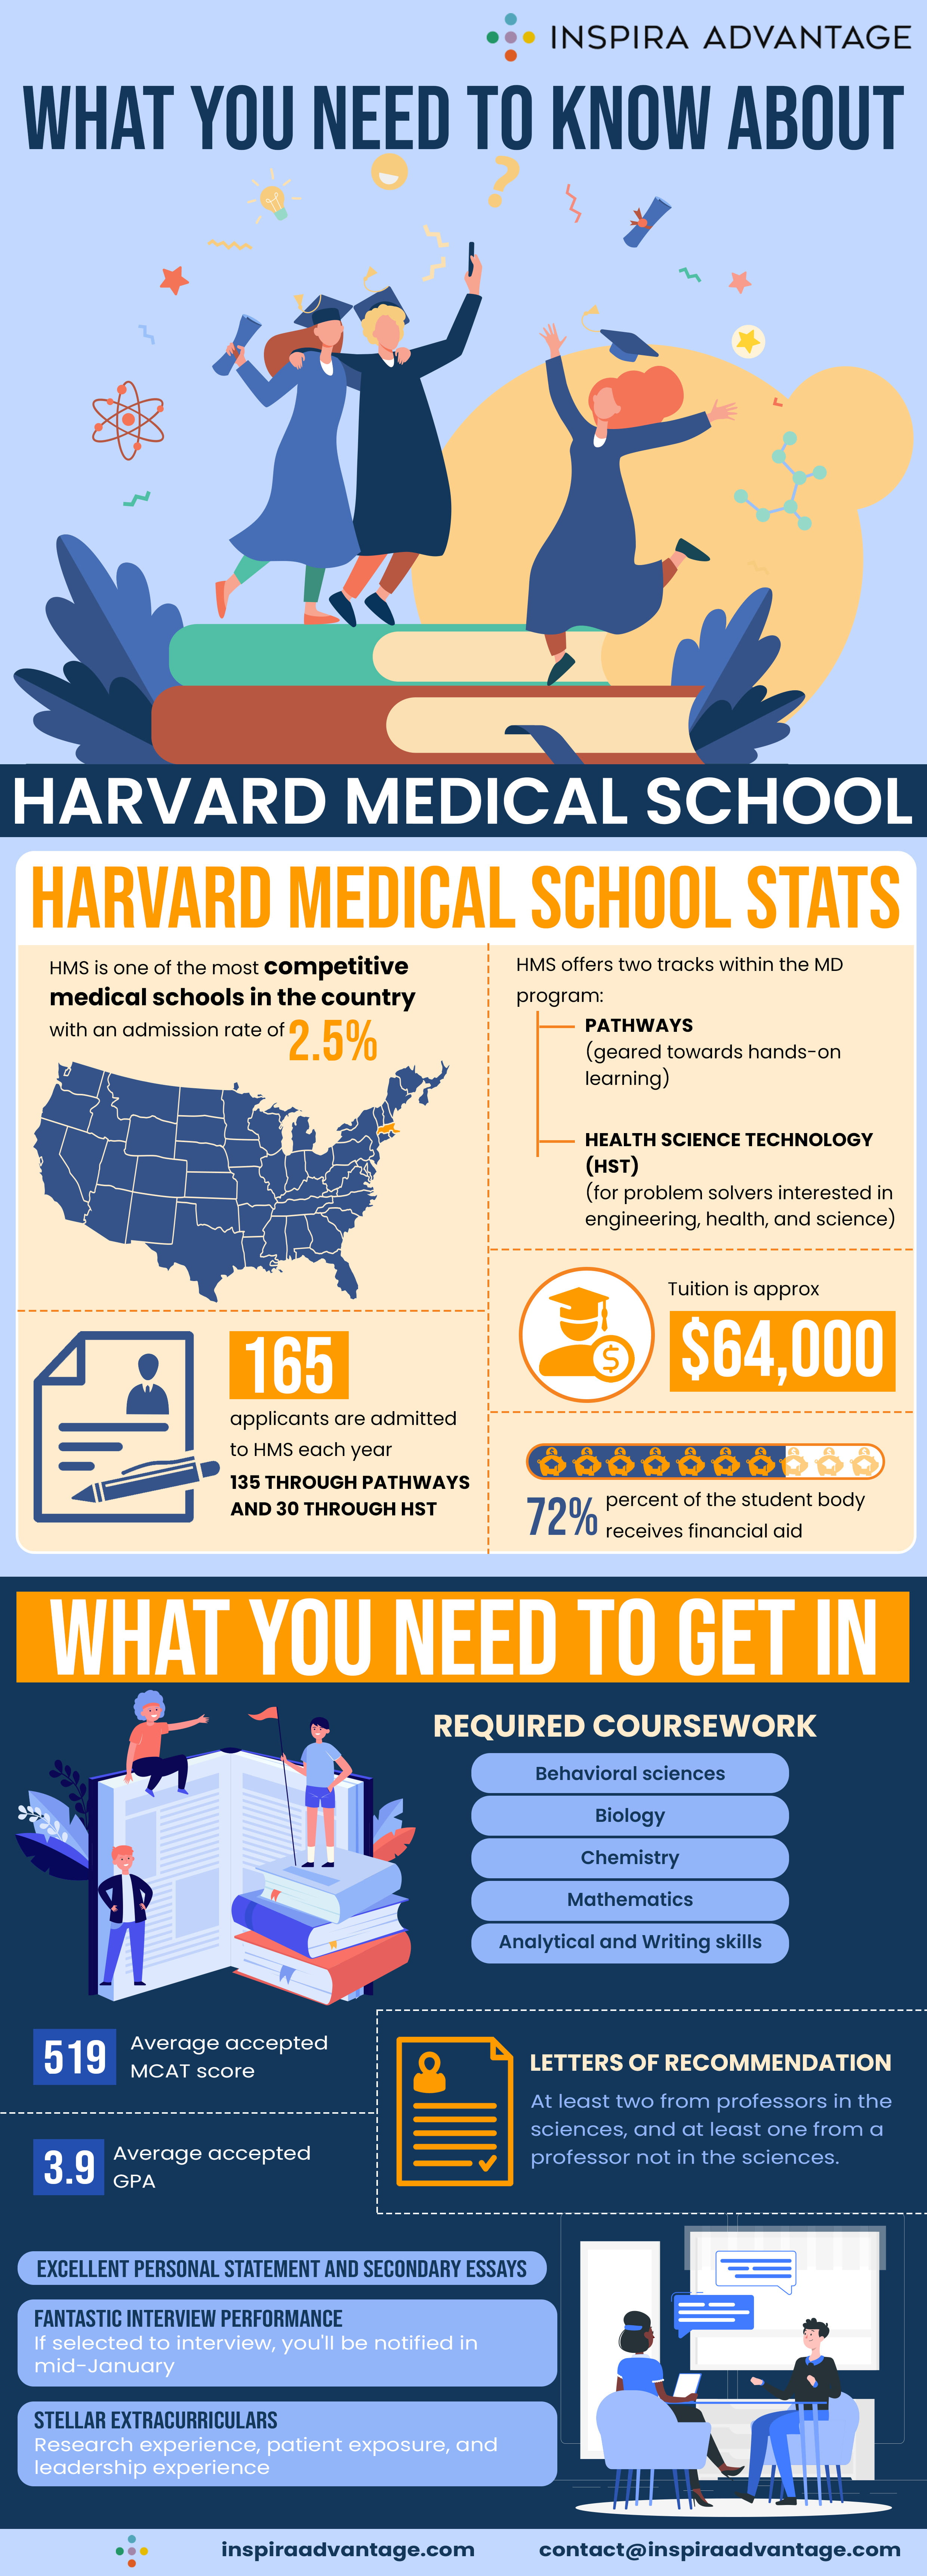 What you need to know about Harvard Medical School